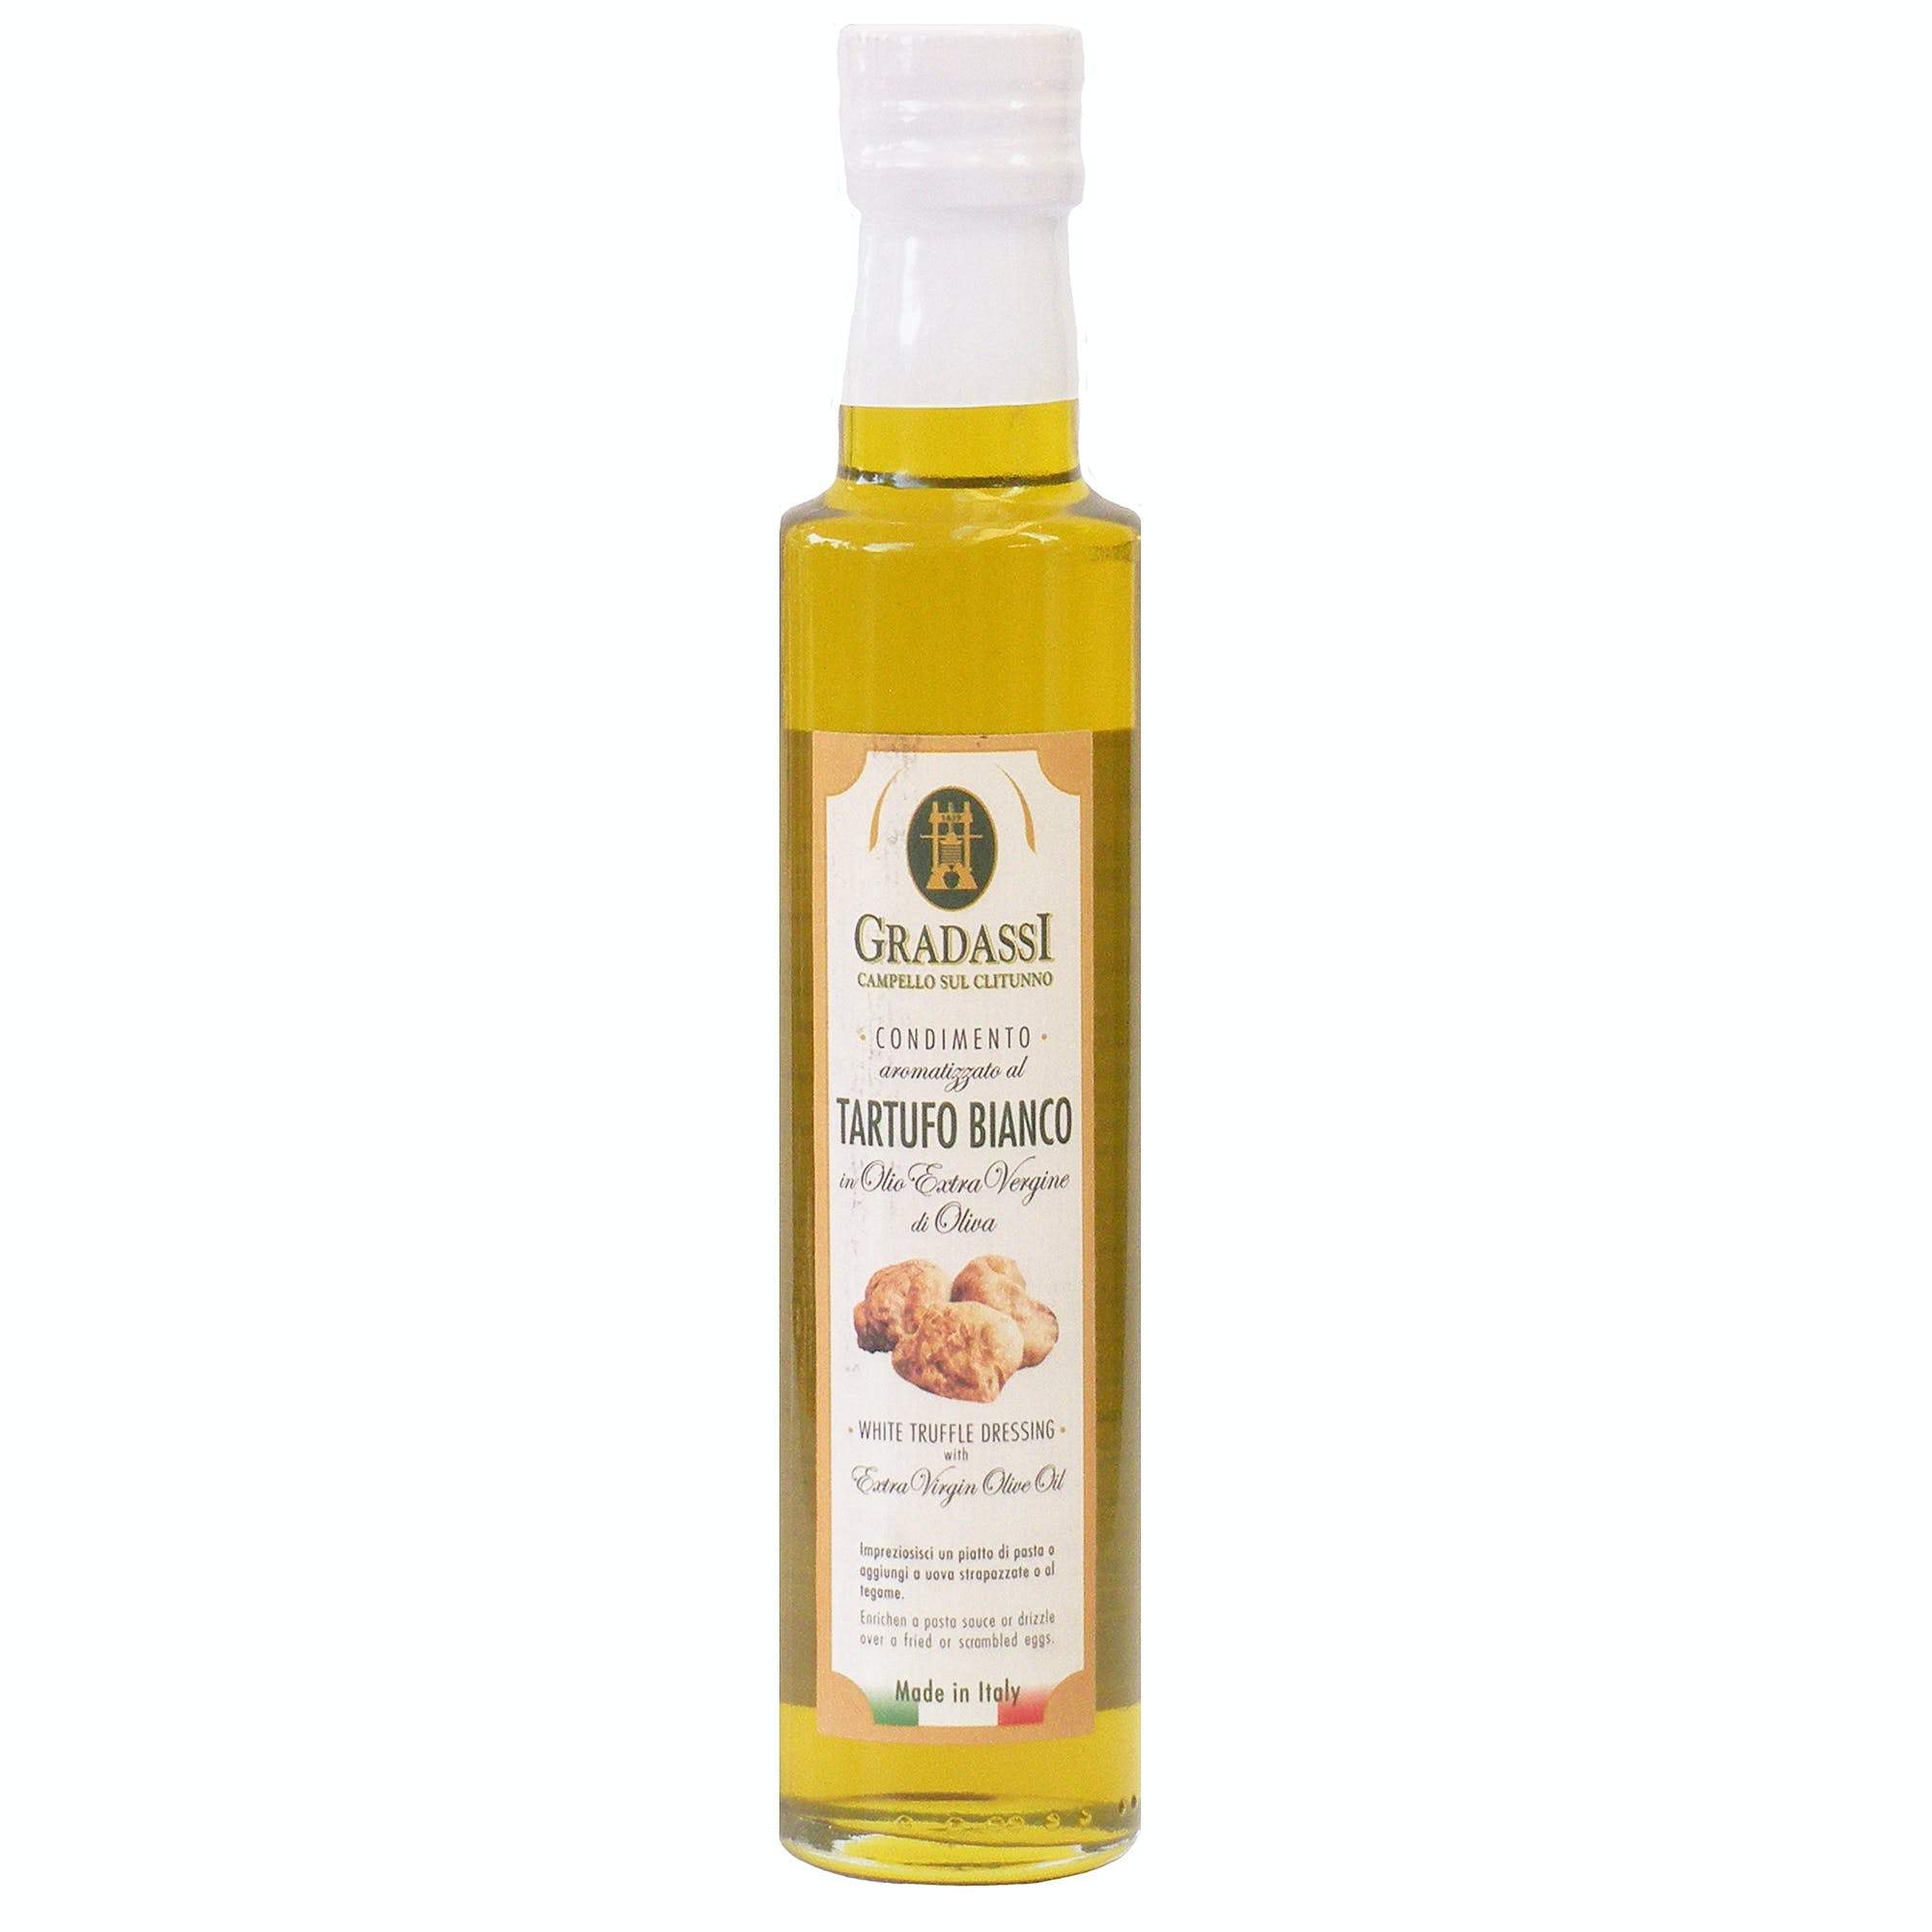 Italian Natural White Truffle Infused Extra Virgin Olive Oil Dressing From Cufrol, 8.5 Ounces - sold by M5 Corporation